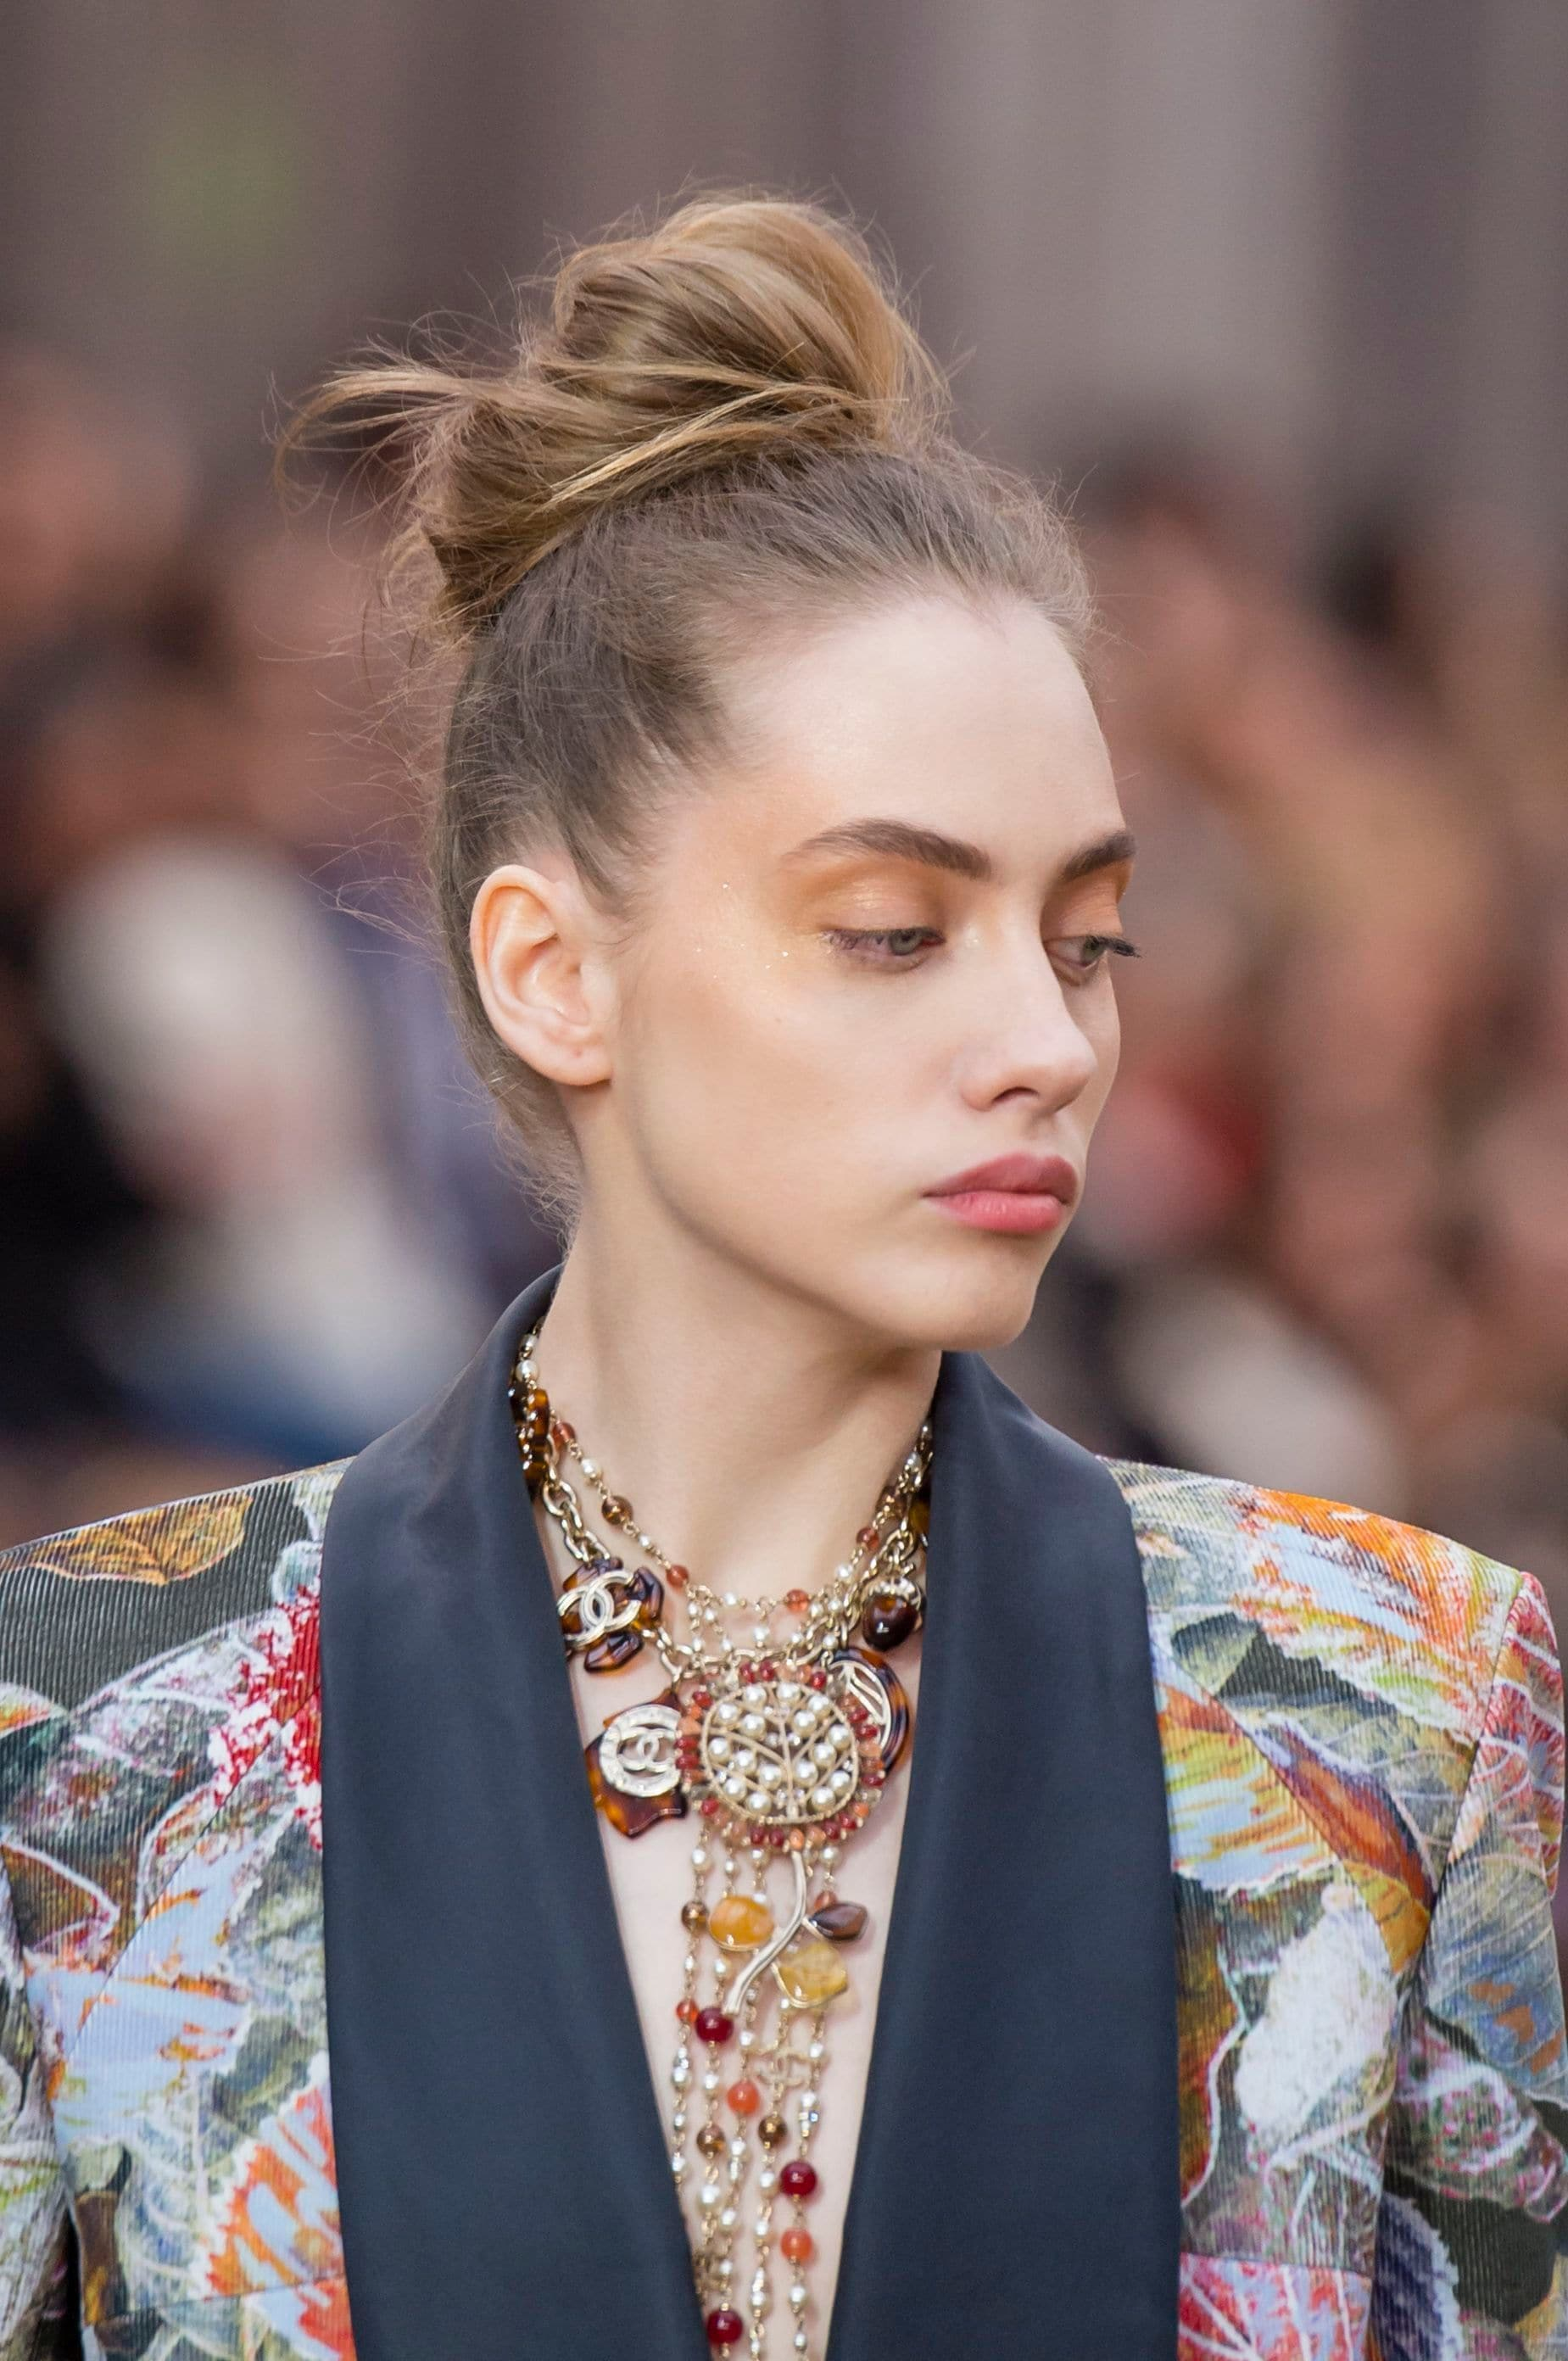 Knot bun hairstyle: Runway picture of a woman with light brunette hair in a loose messy top knot